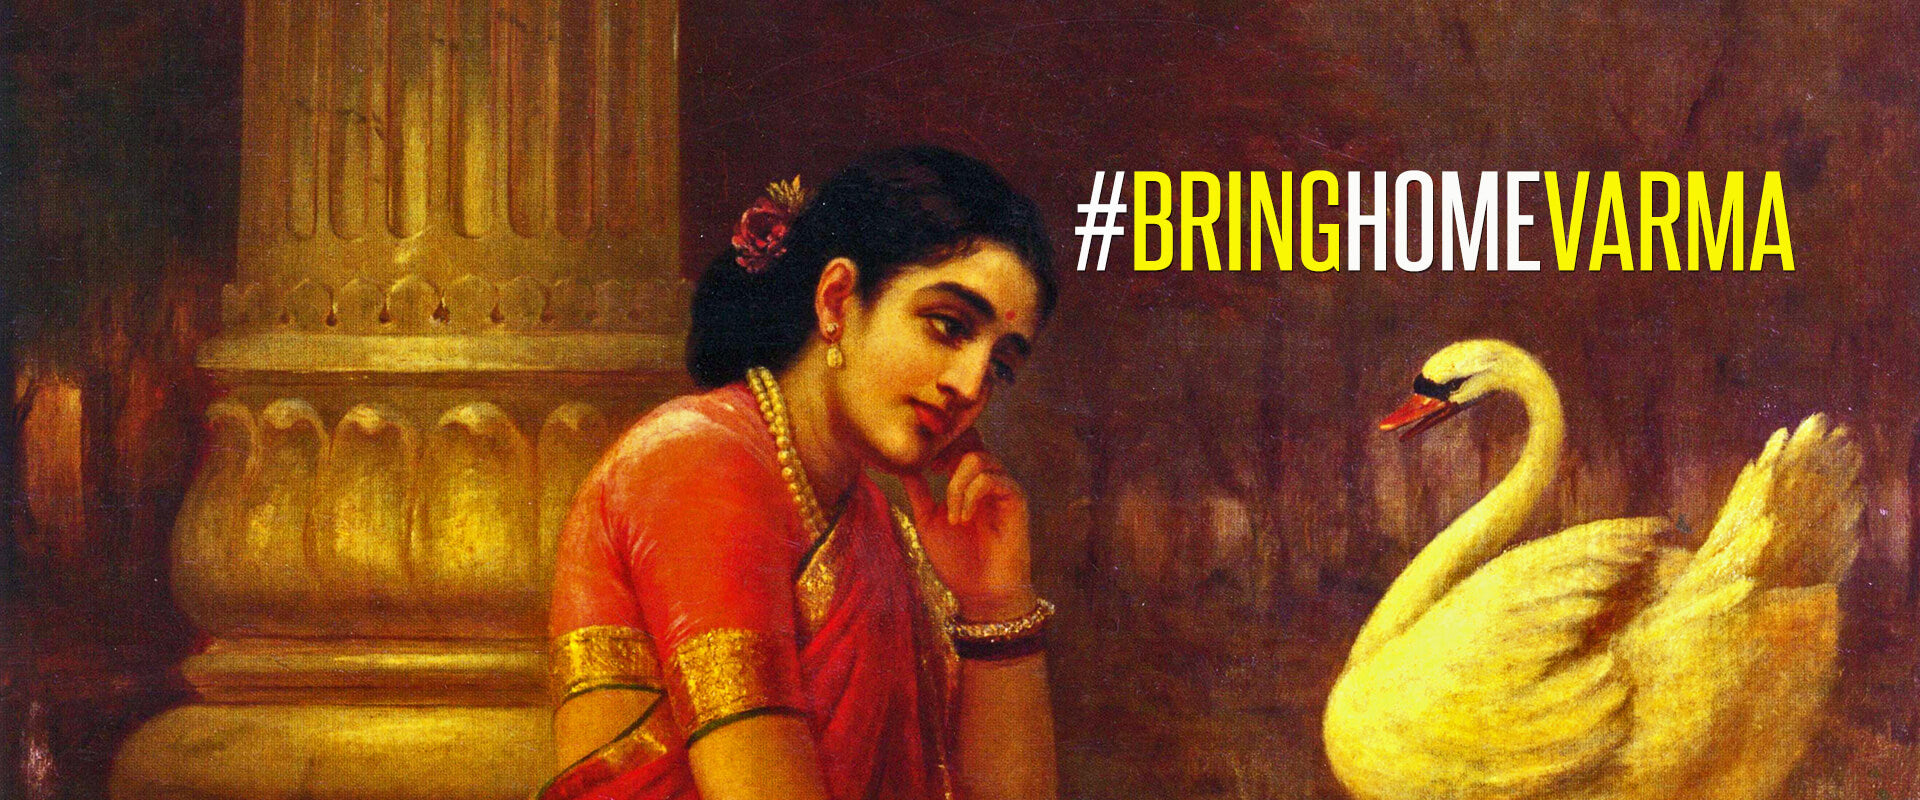 International Shipping — Raja Ravi Varma Paintings | Buy Canvas Prints, Gallery Wraps & Framed Prints. Economical International Shipping To Over 20 countries.